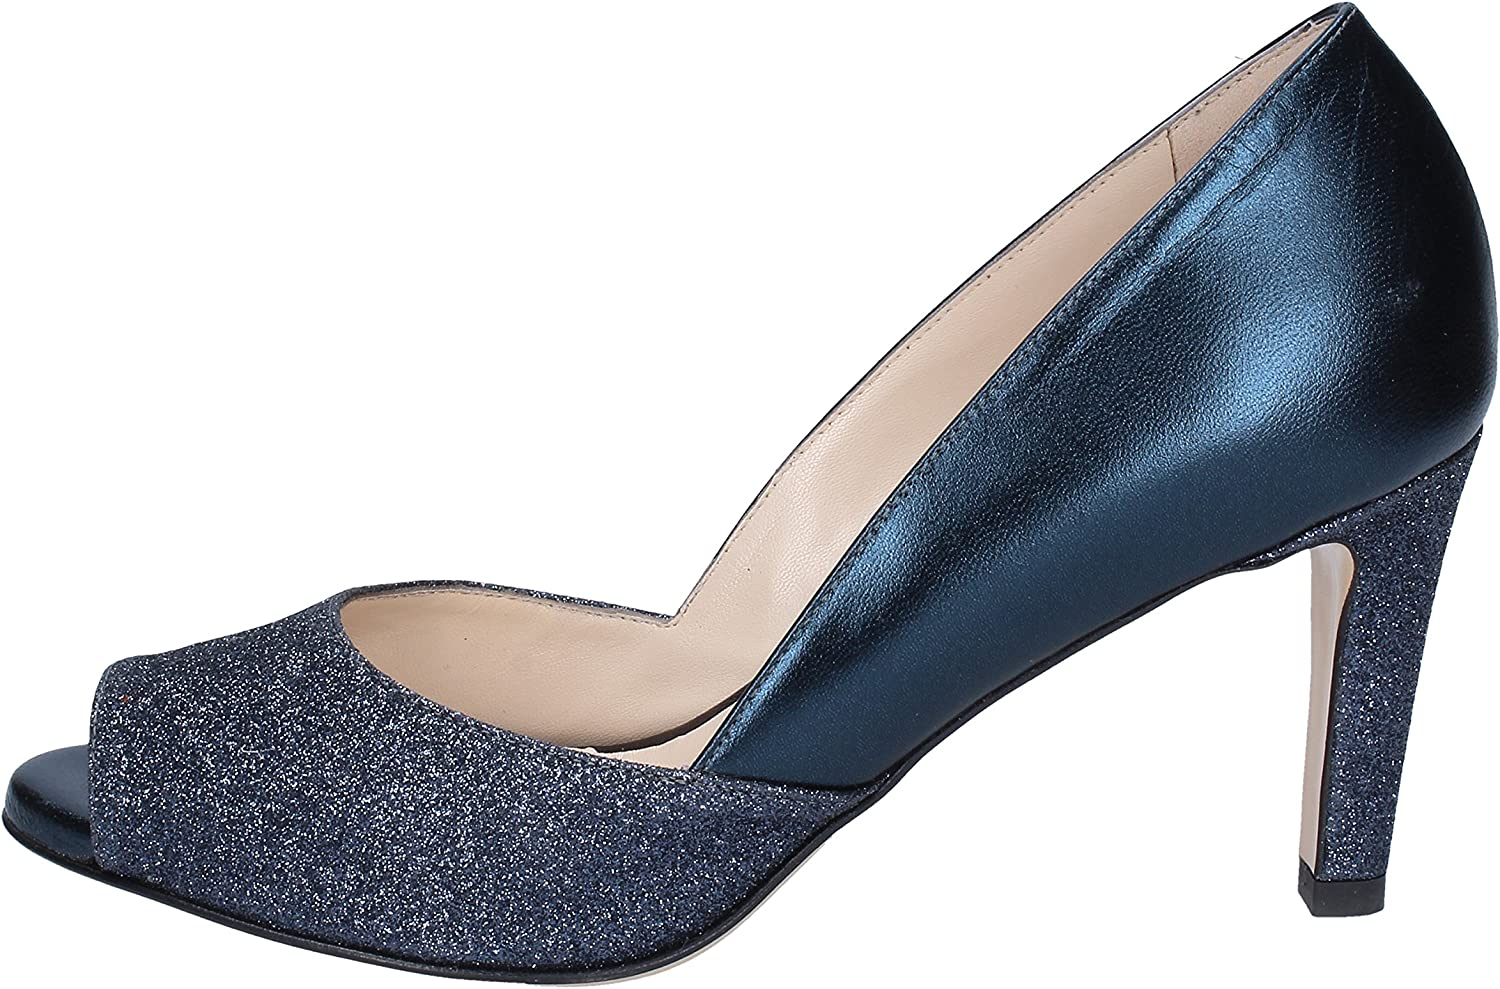 GUIDO SGARIGLIA Pumps-shoes Womens bluee